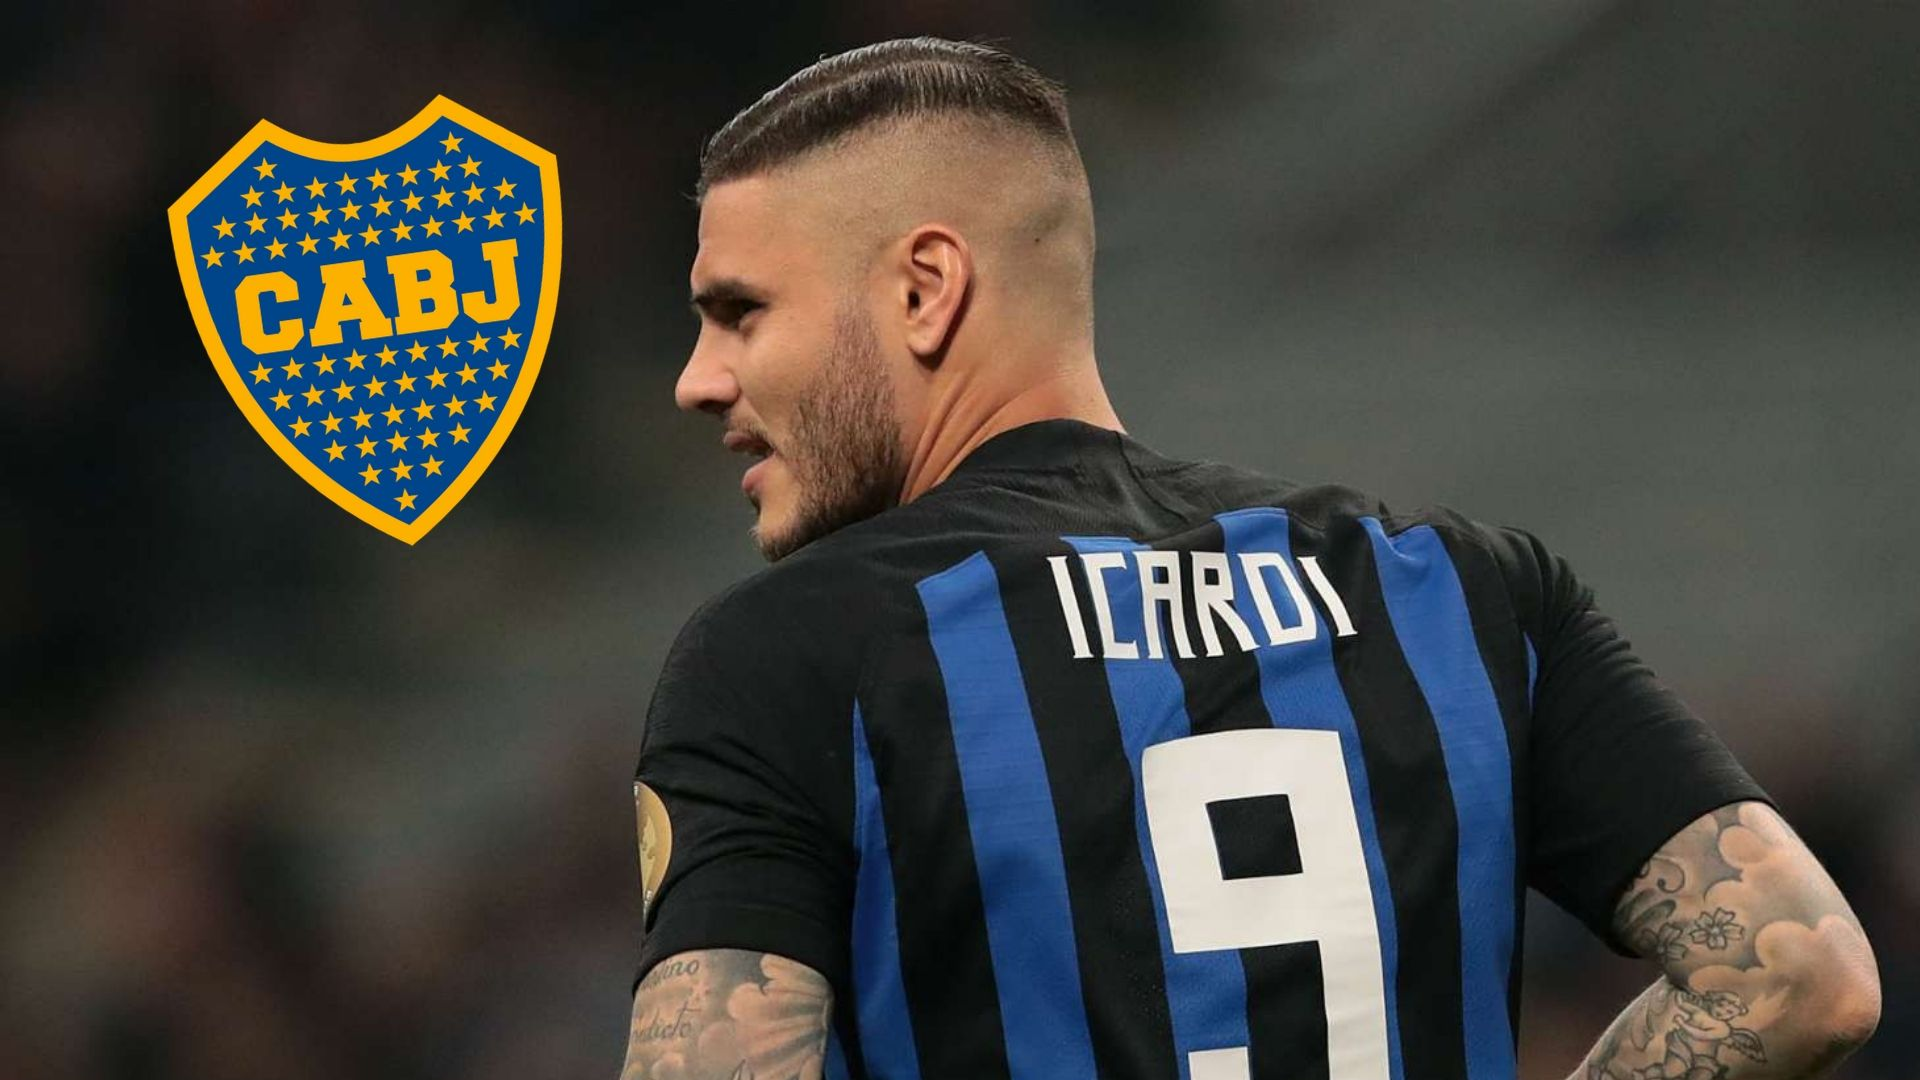 Calciomercato Inter, Icardi suggestione del Boca Juniors: